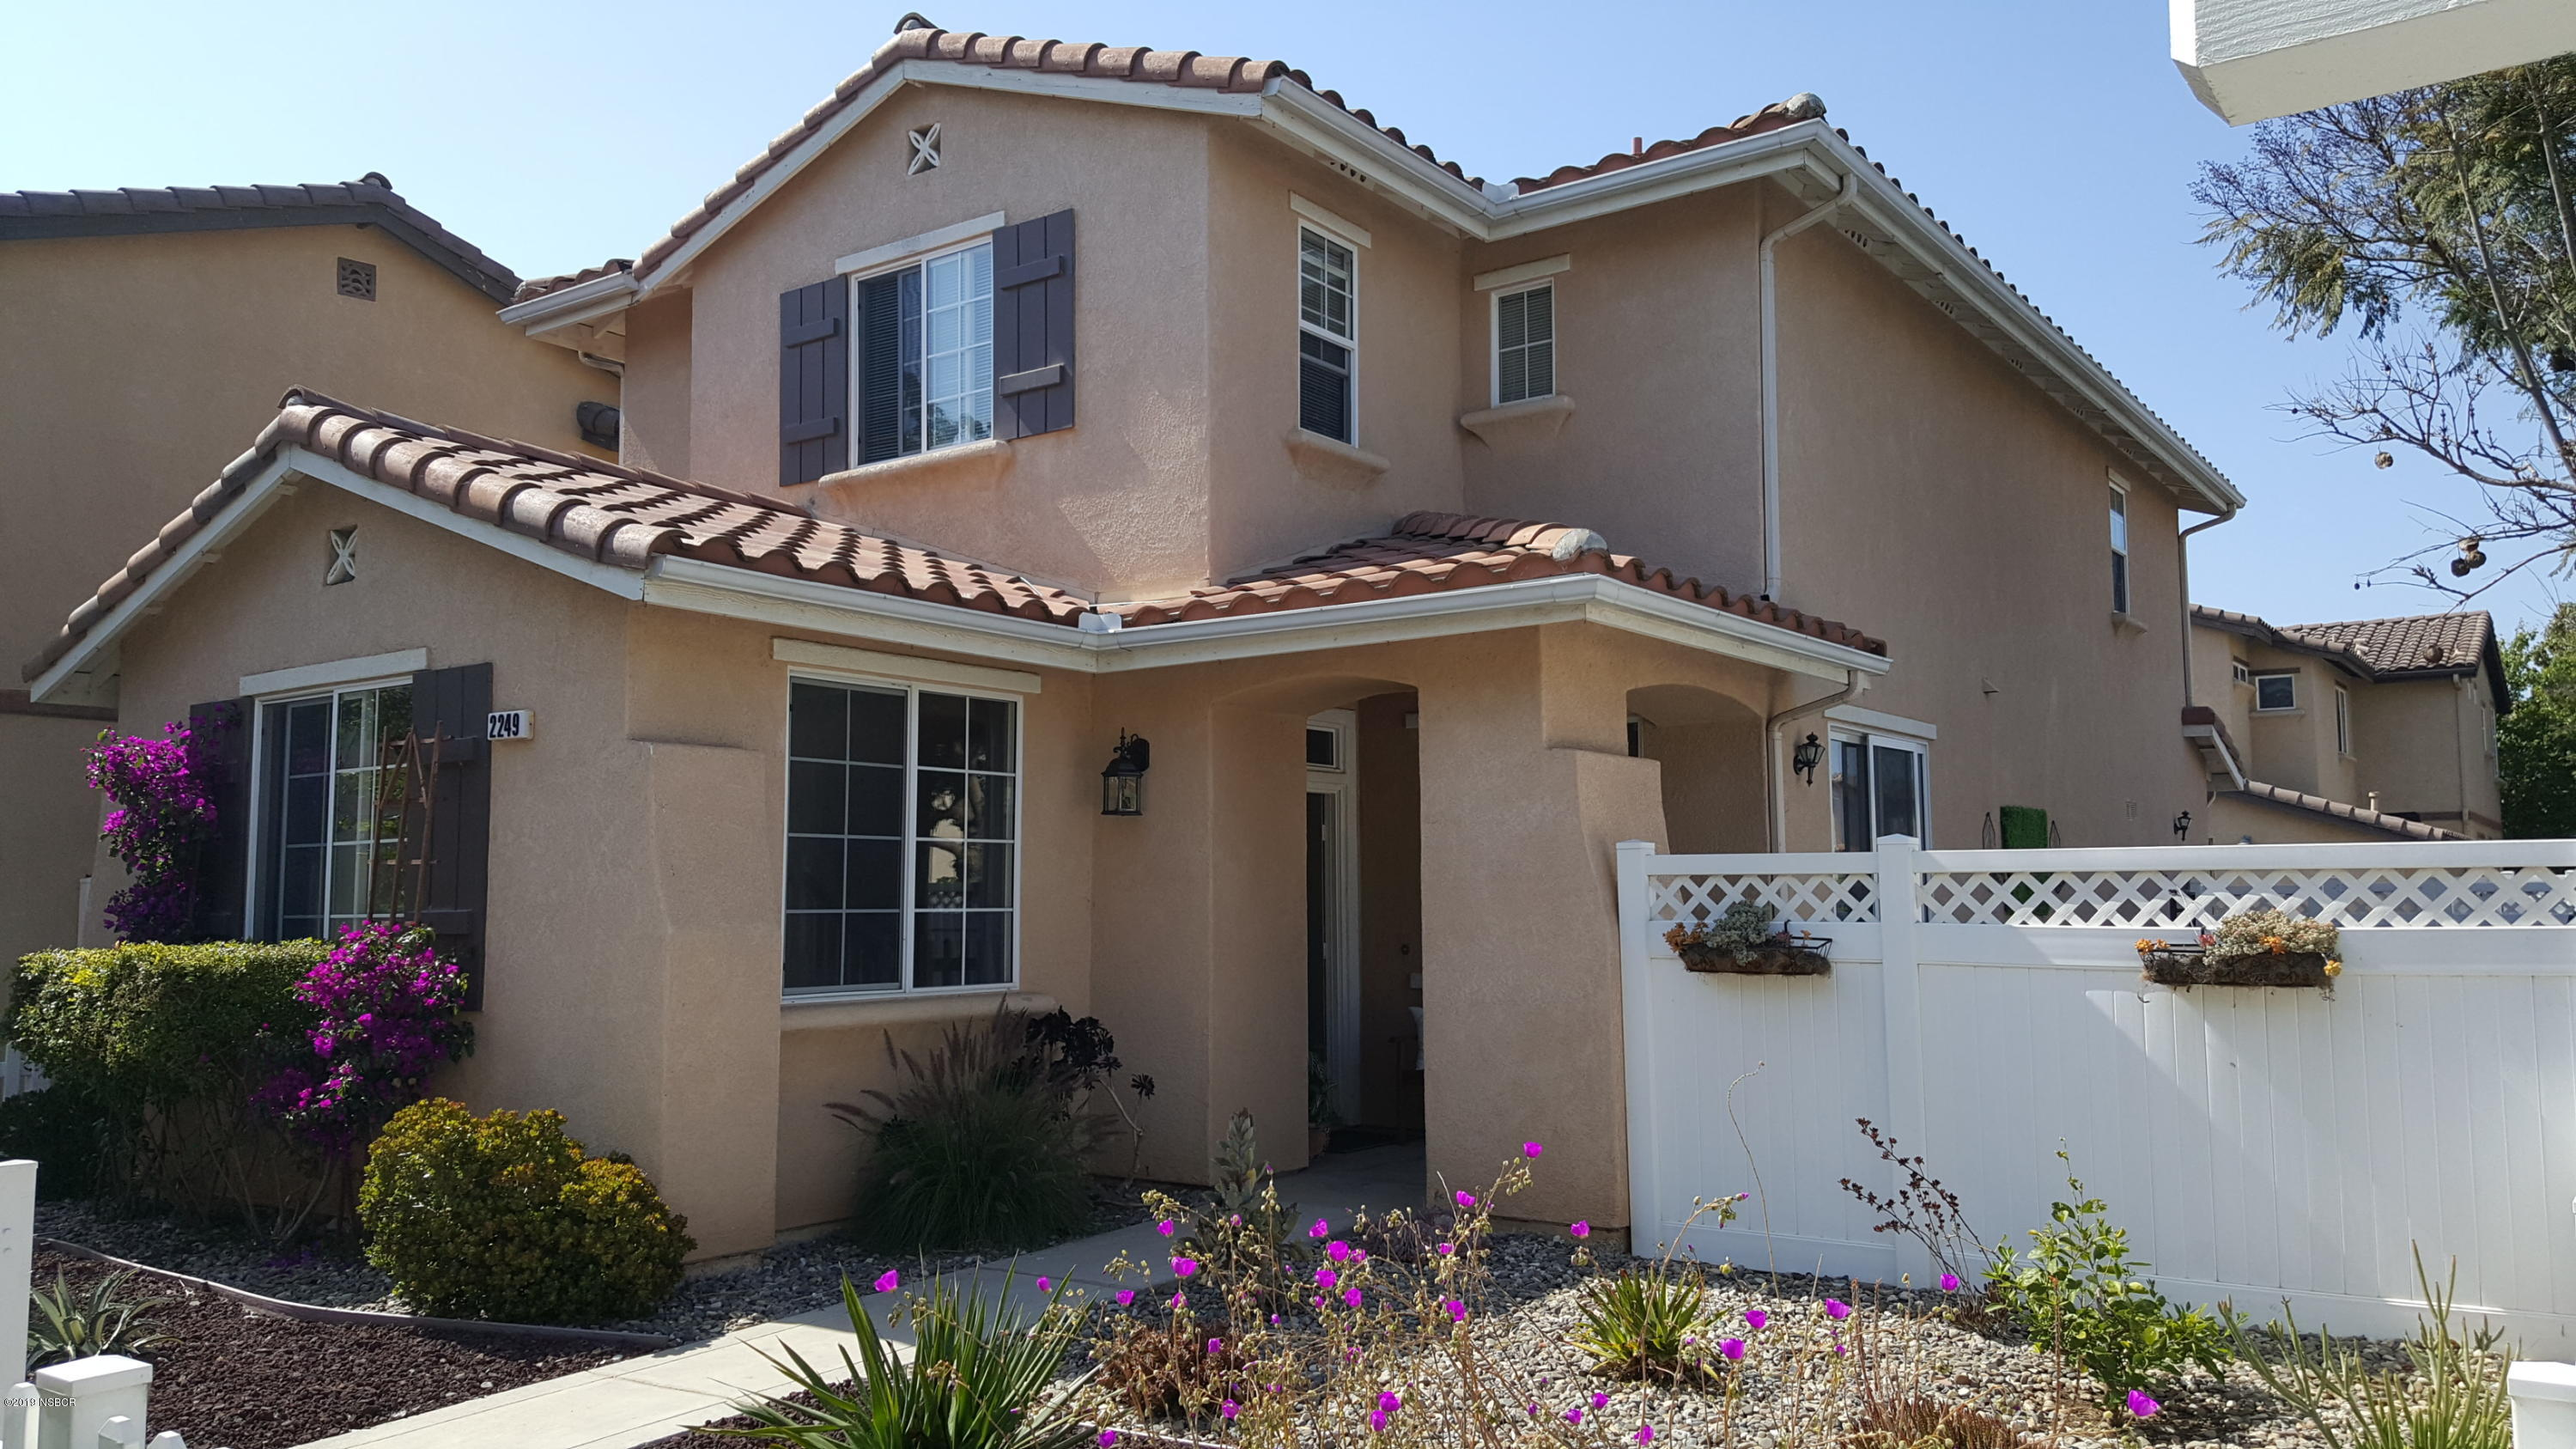 2249  Nightshade Lane 93455 - One of Santa Maria Homes for Sale